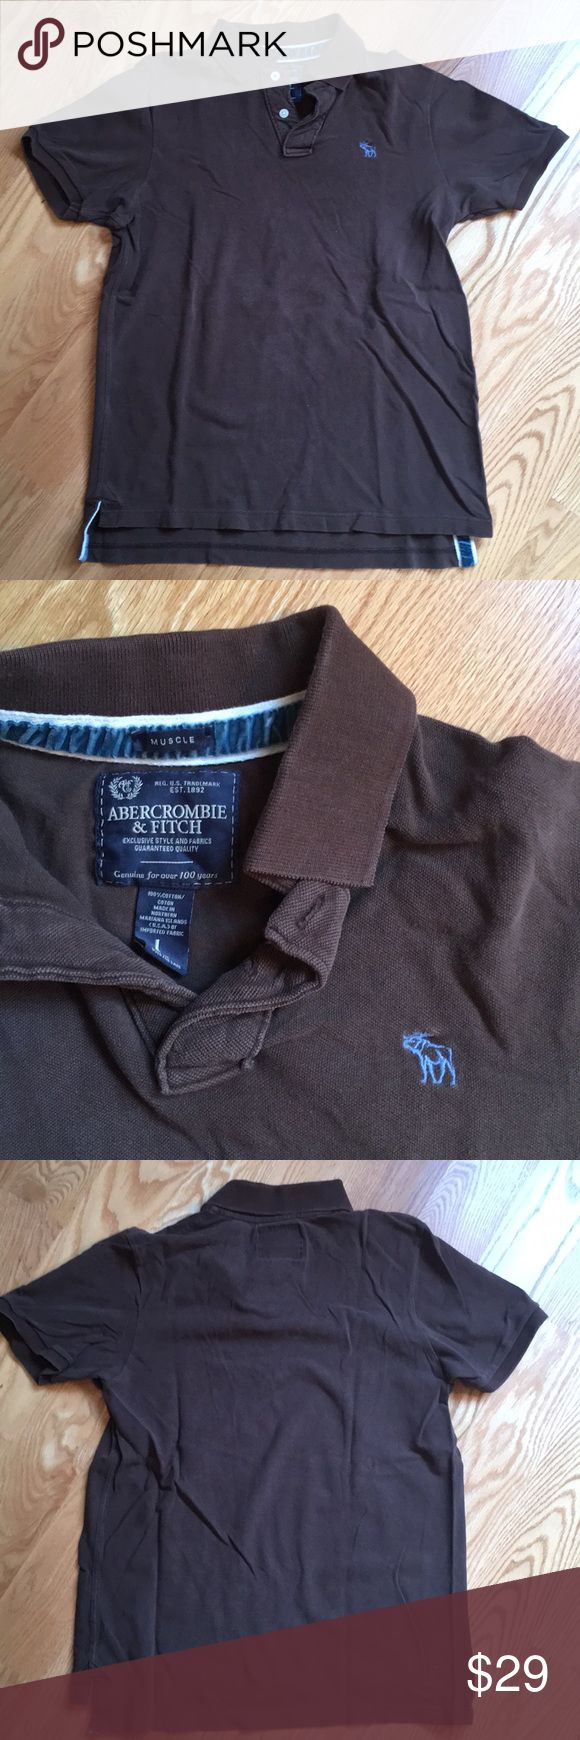 Abercrombie men's polo short sleeve Brown color, in great condition. 100% cotton Abercrombie & Fitch Shirts Polos